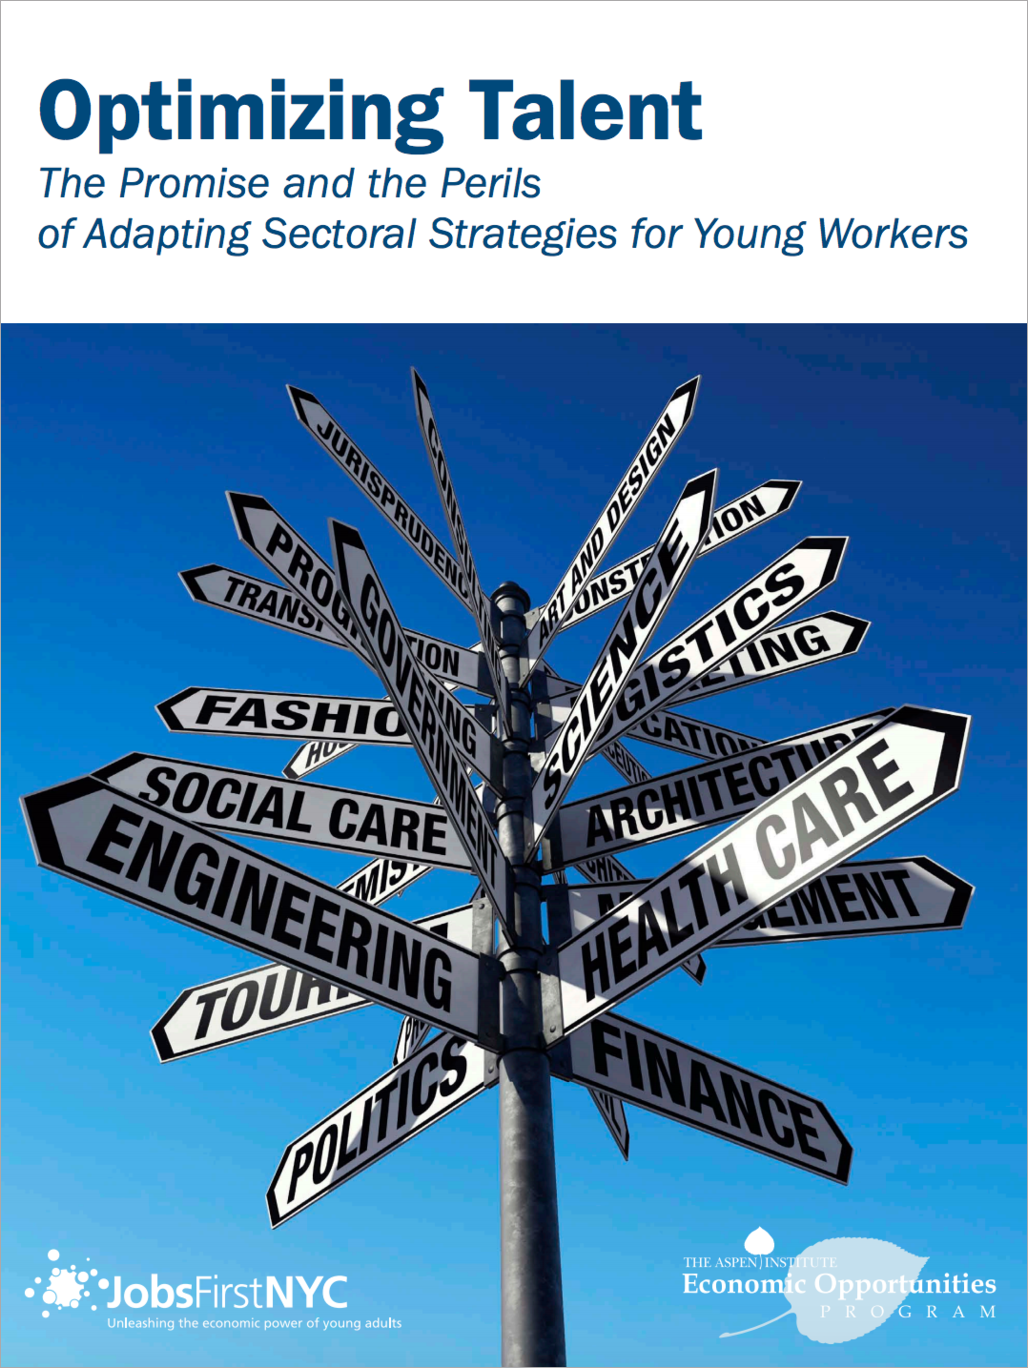 A 2016 paper released by JobsFirstNYC and The Aspen Institute Economic Opportunities Program detailing the findings from the initial rollout of YASEP. Learn more  here .